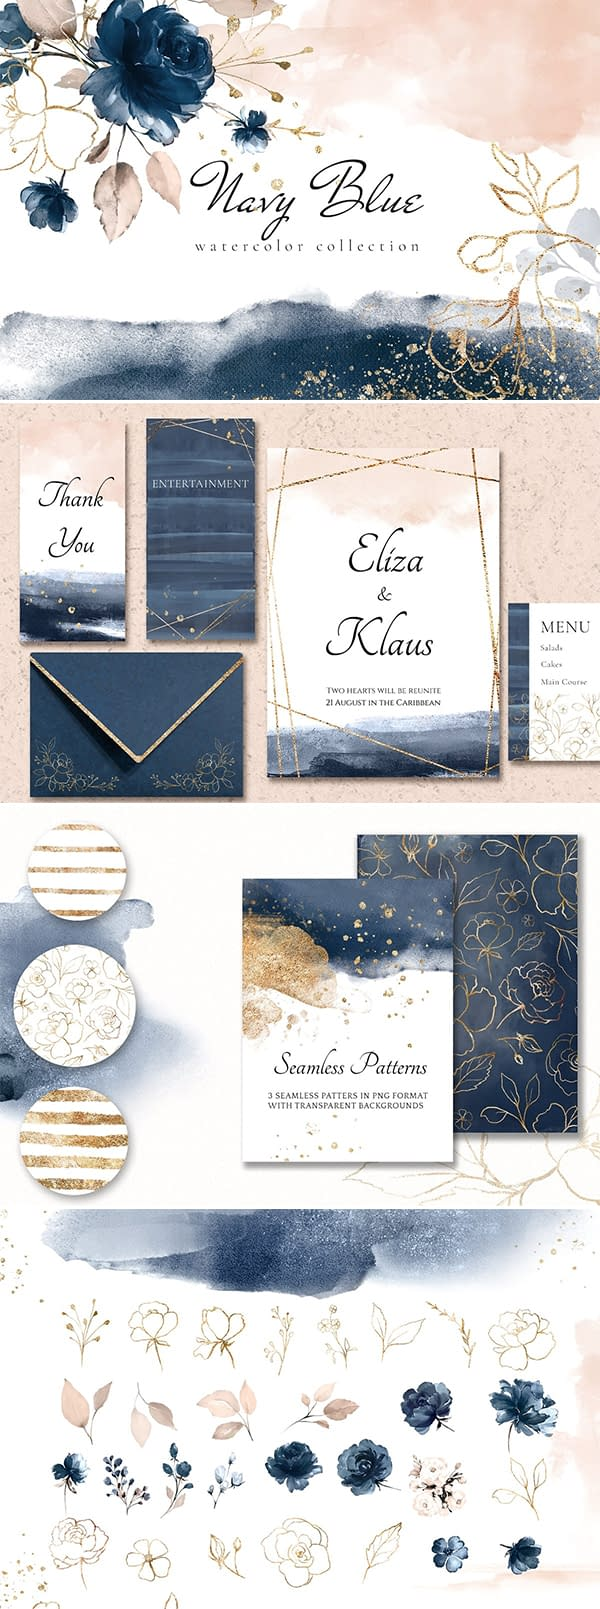 Navy Blue Watercolor Collection